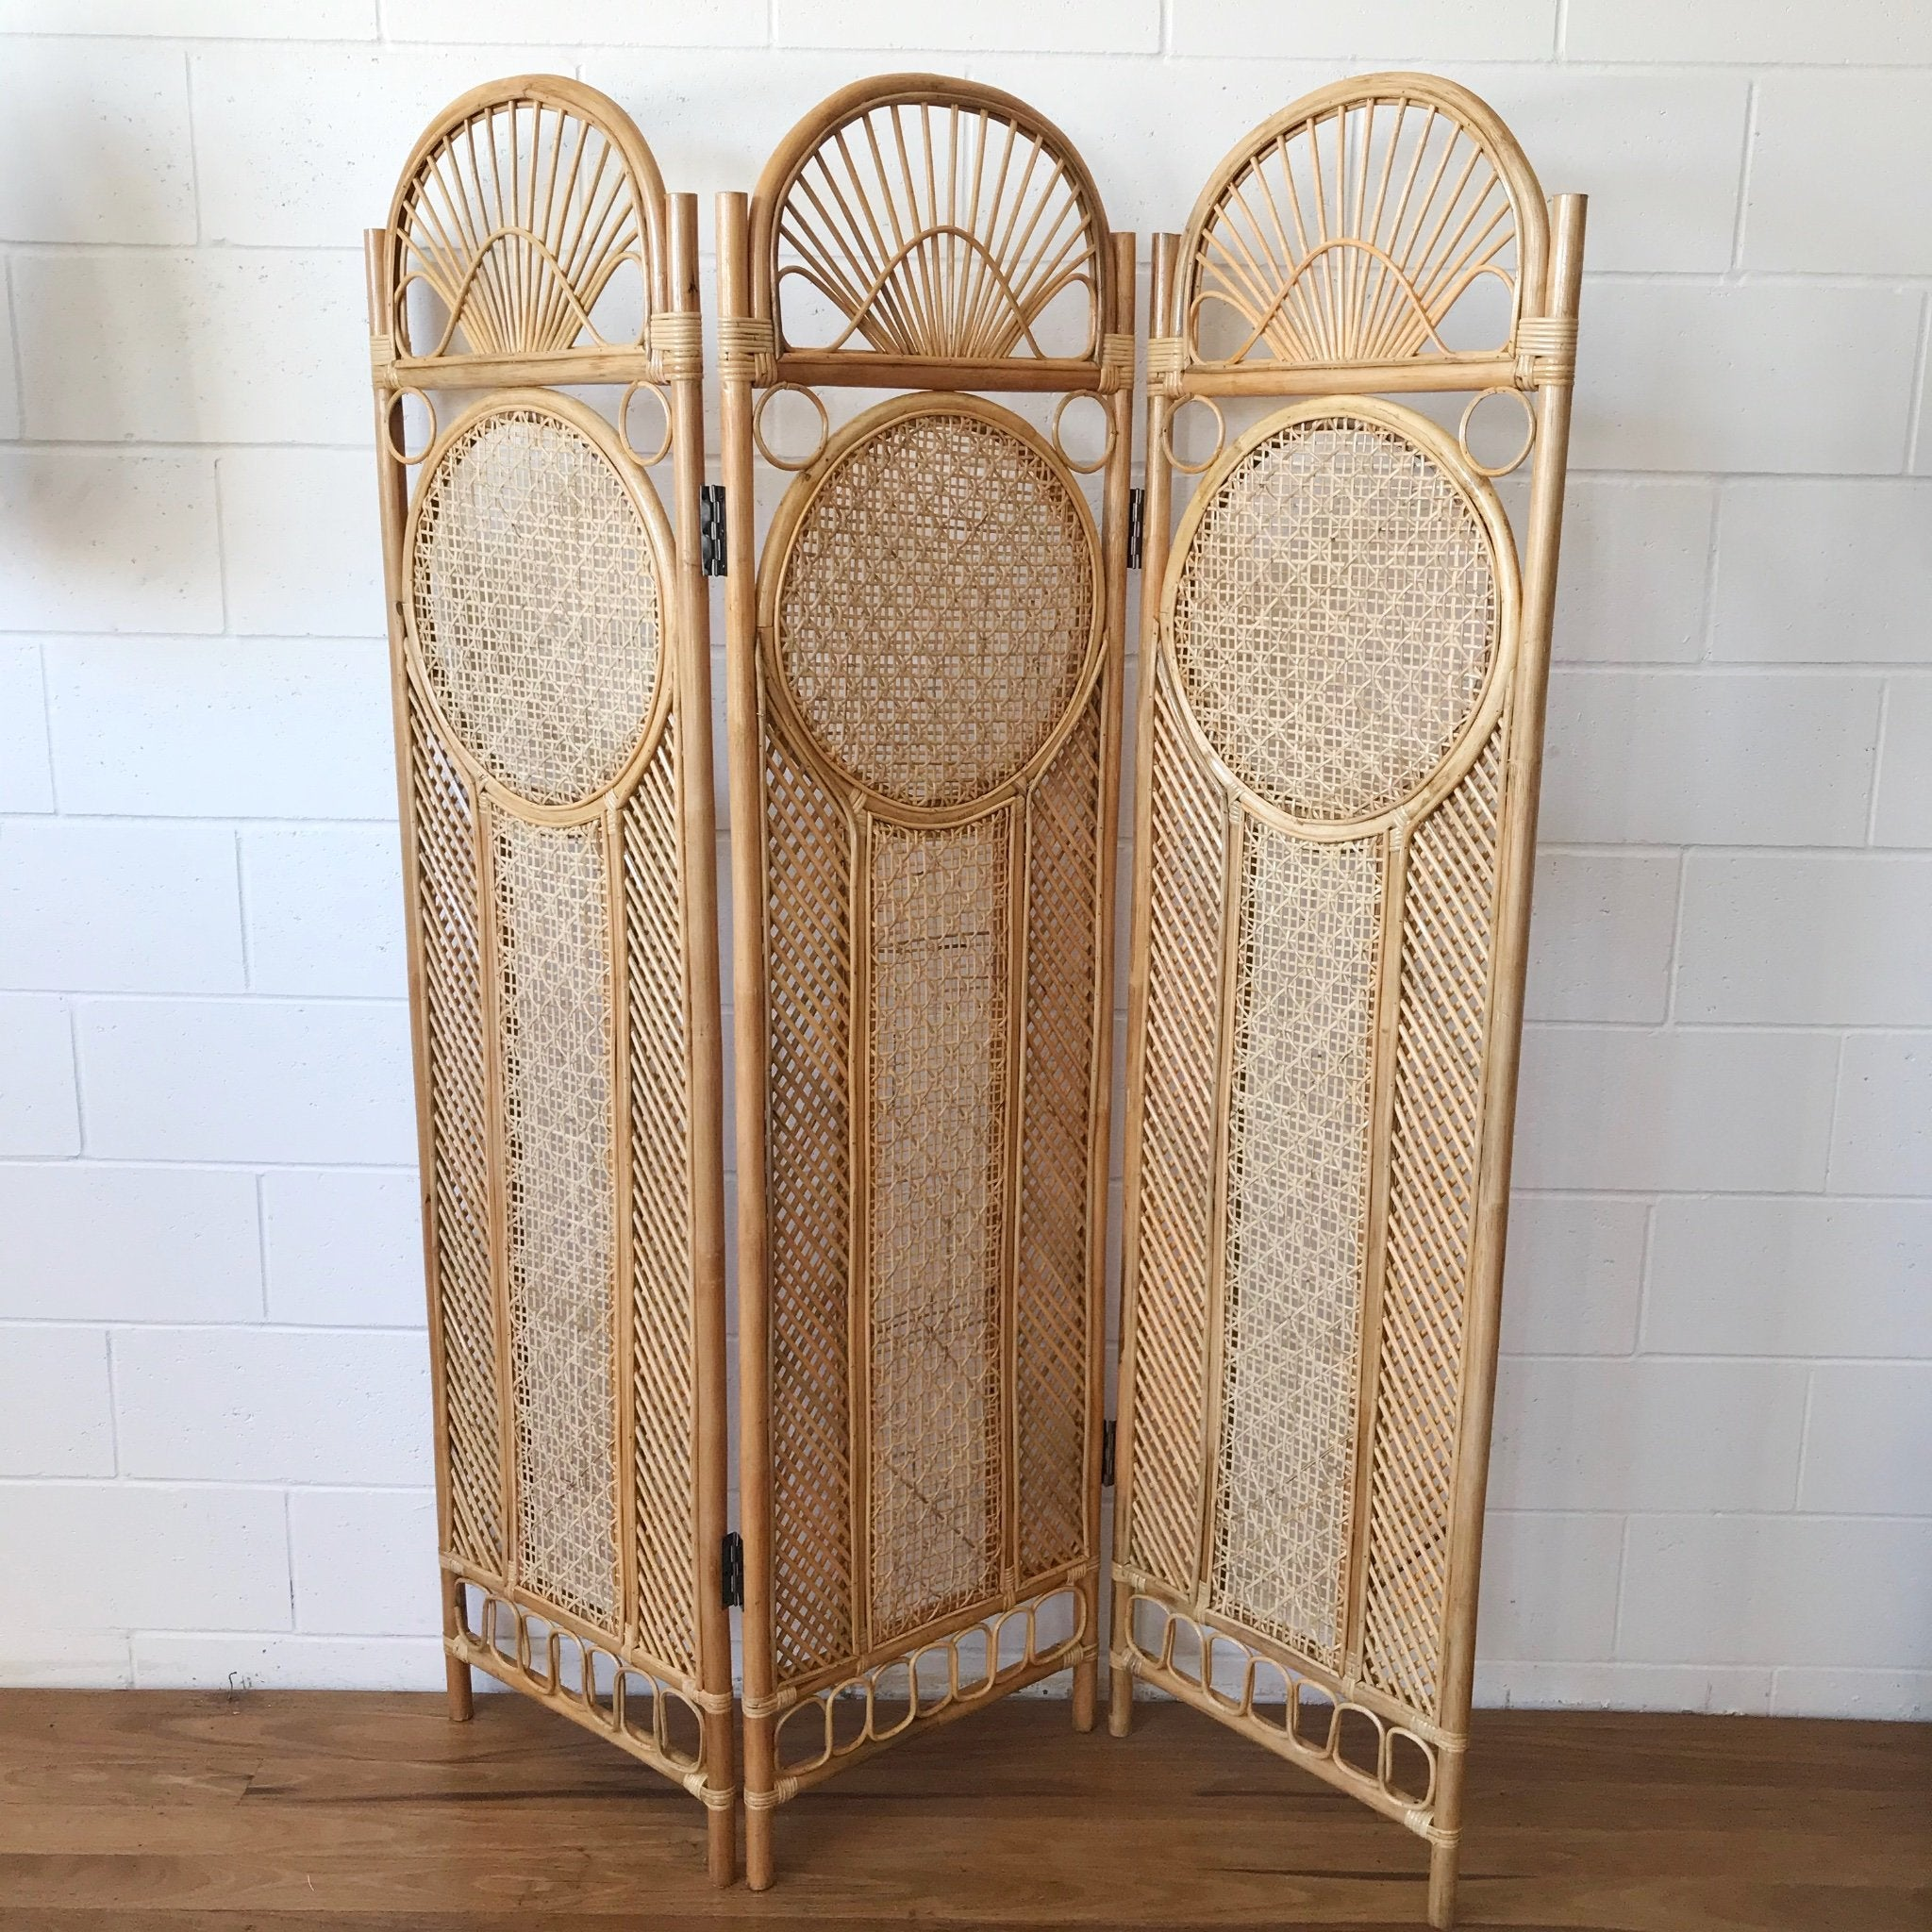 Round Rattan 3 Panel Screen Room Divider Paradise Living Co